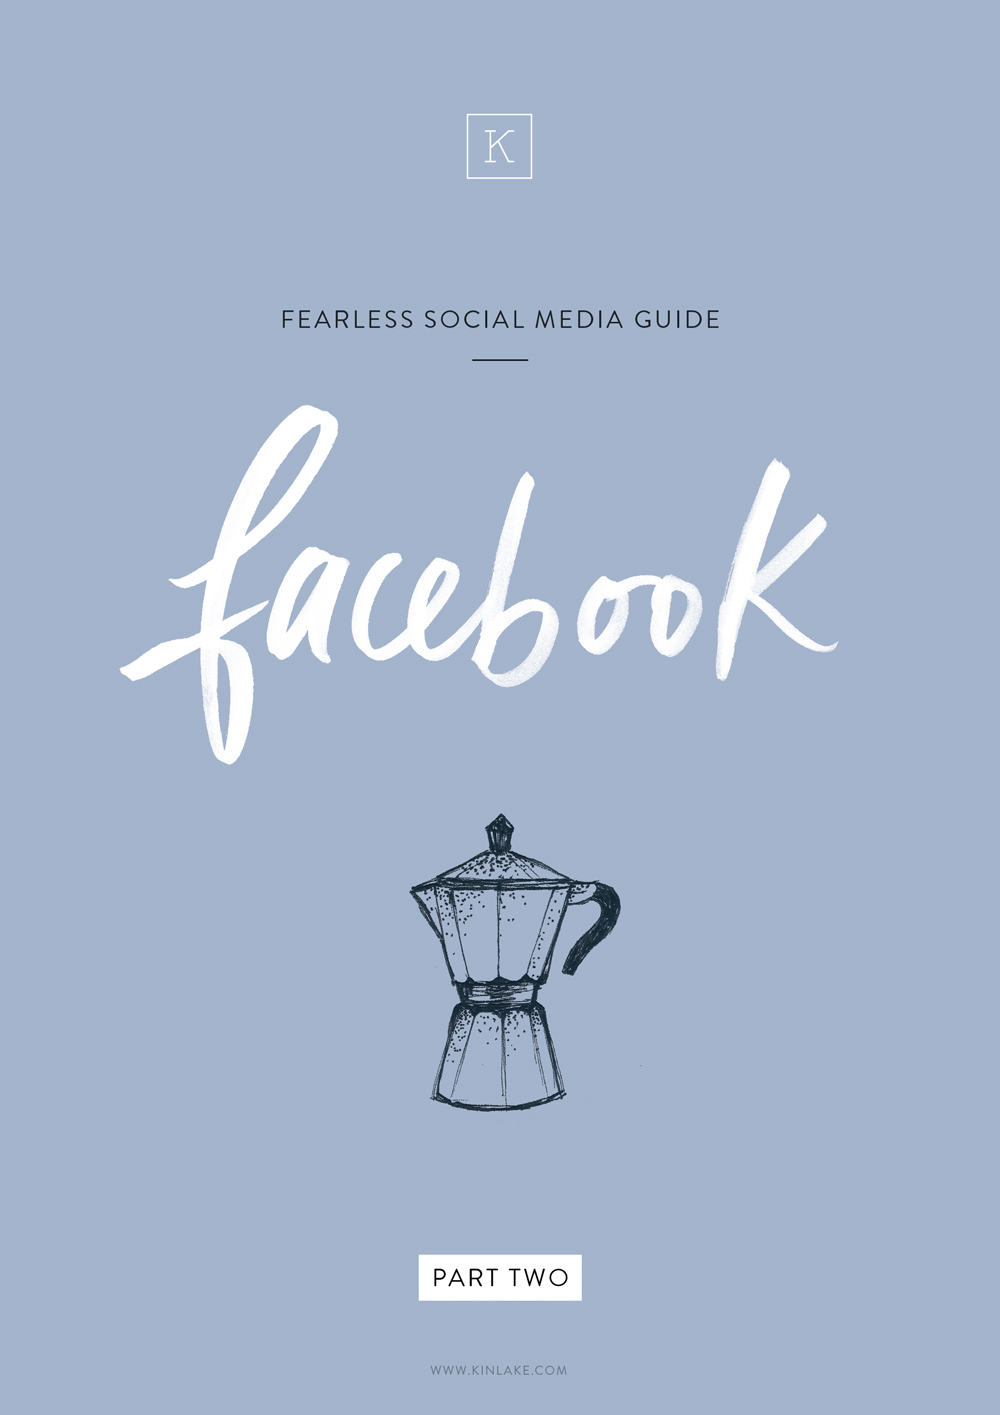 Fearless-social-media-tips-guide-facebook-kinlake-02